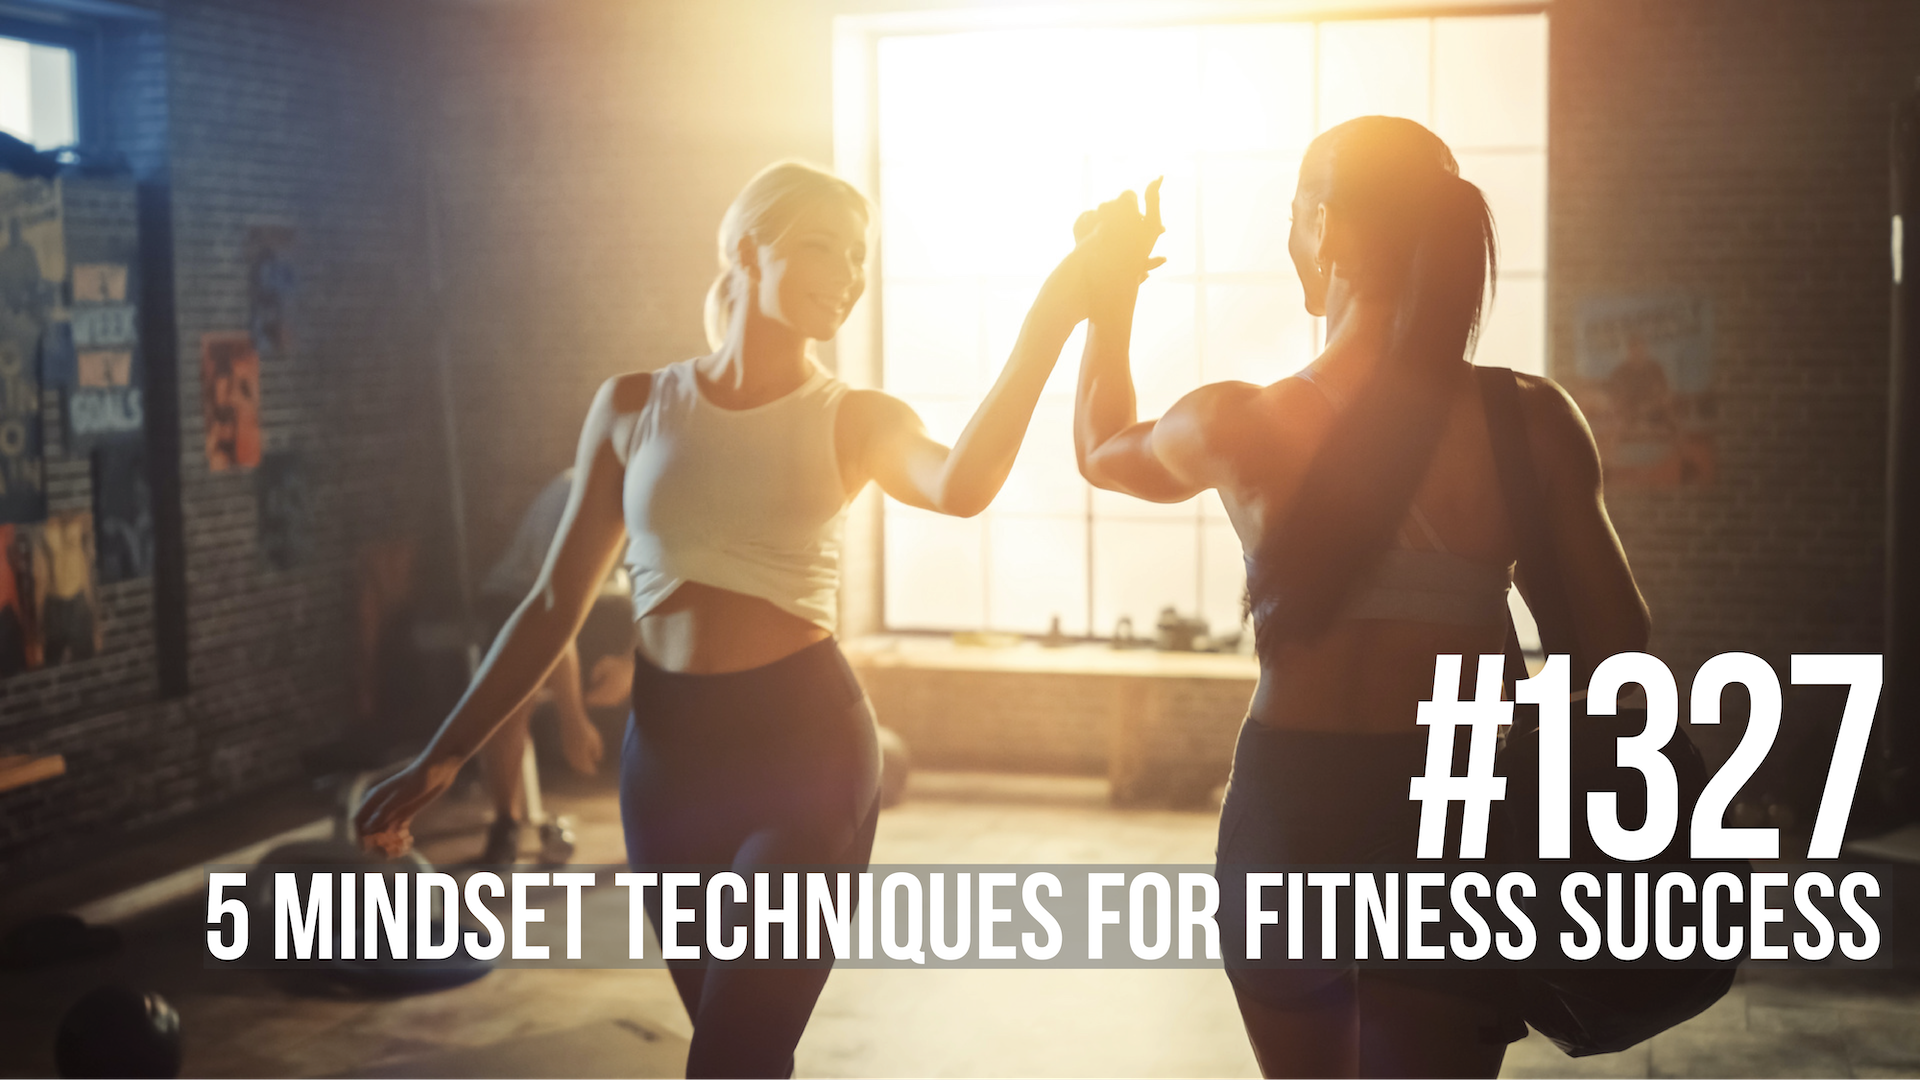 1327: Five Mindset Techniques for Fitness Success